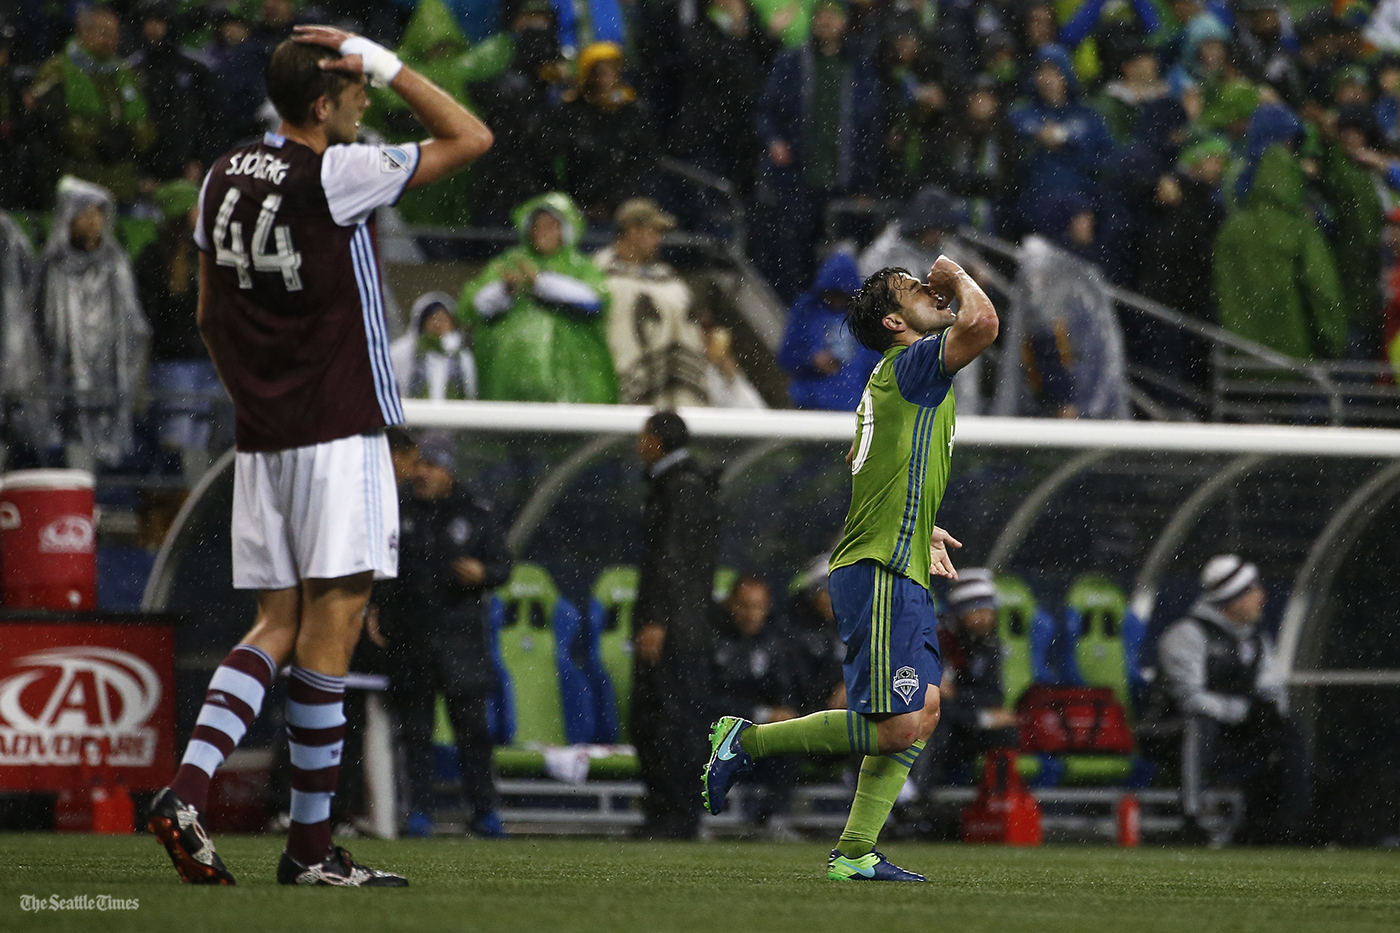 Seattle Sounders midfielder Nicolas Lodeiro (10) celebrates after scoring a penalty kick in the second half of their MLS Western Conference Final game against the Colorado Rapids at CenturyLink Field on Tuesday, November 22, 2016.